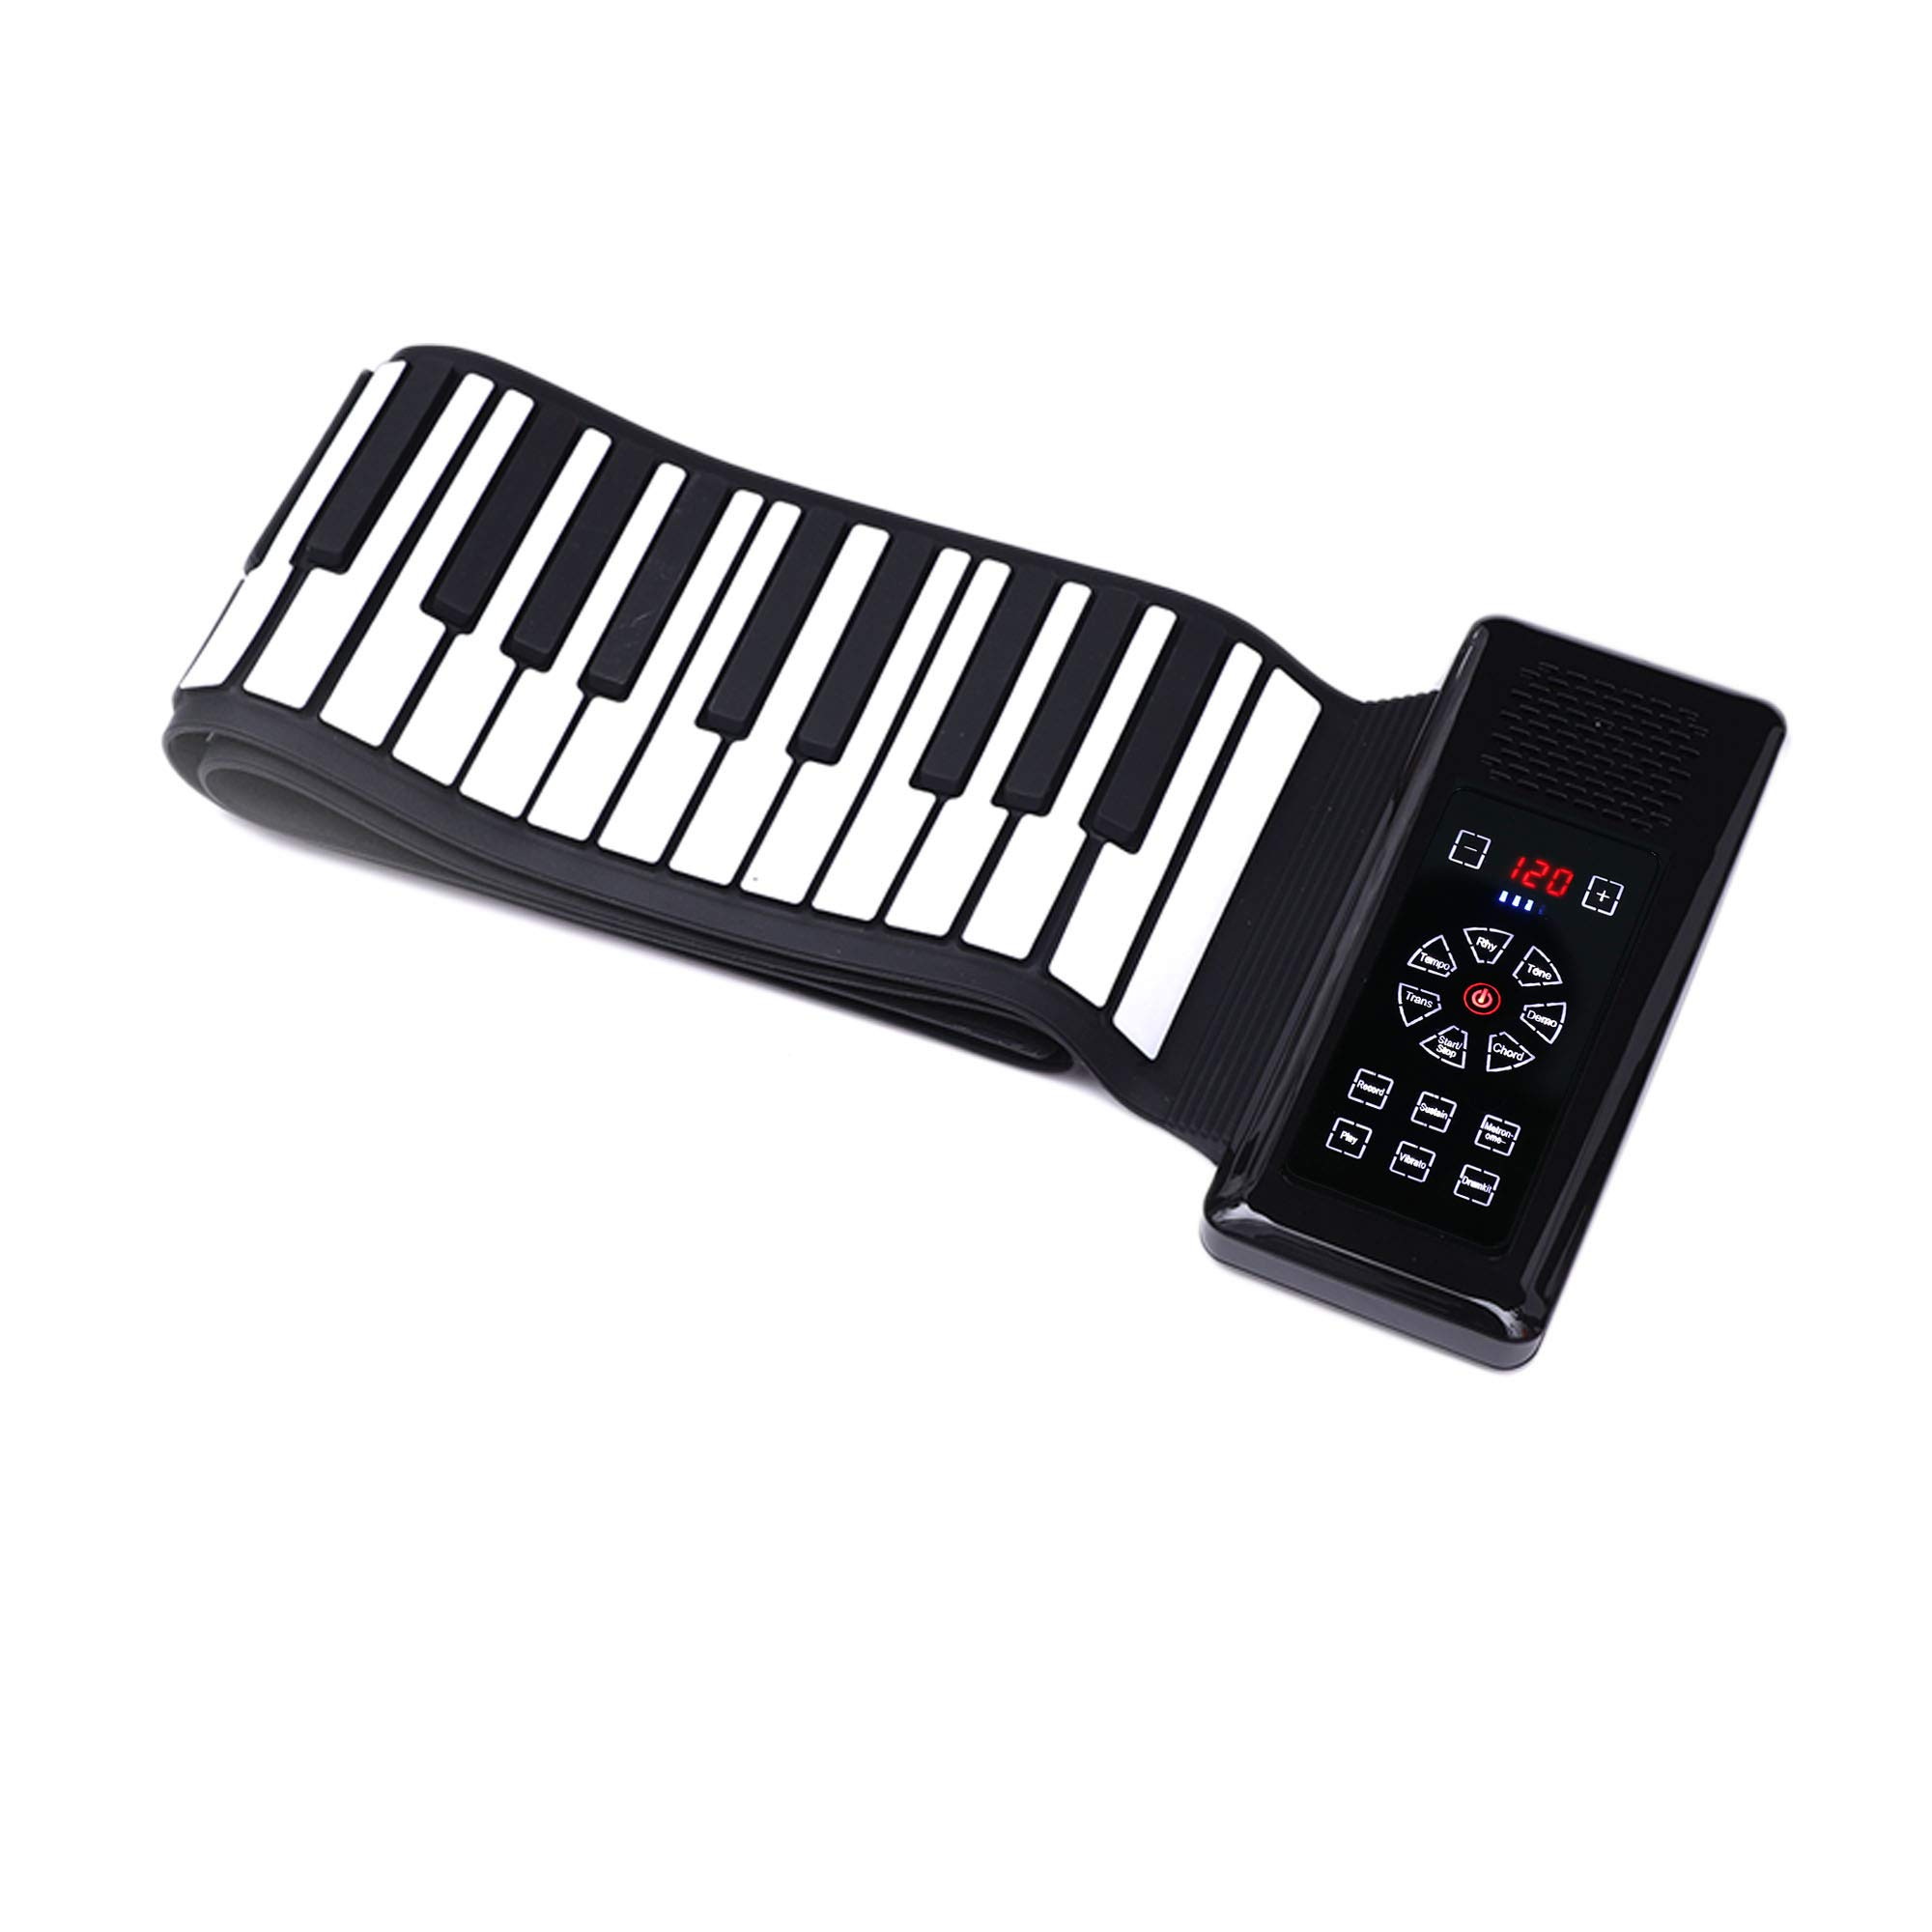 New iLearnMusic Electronic Roll Up Piano Keyboard with Touch Screen Control Center, Portable Keyboard Piano, Premium Grade Silicone & Amplifying Speakers (88 Keys, Black) by iLearnMusic